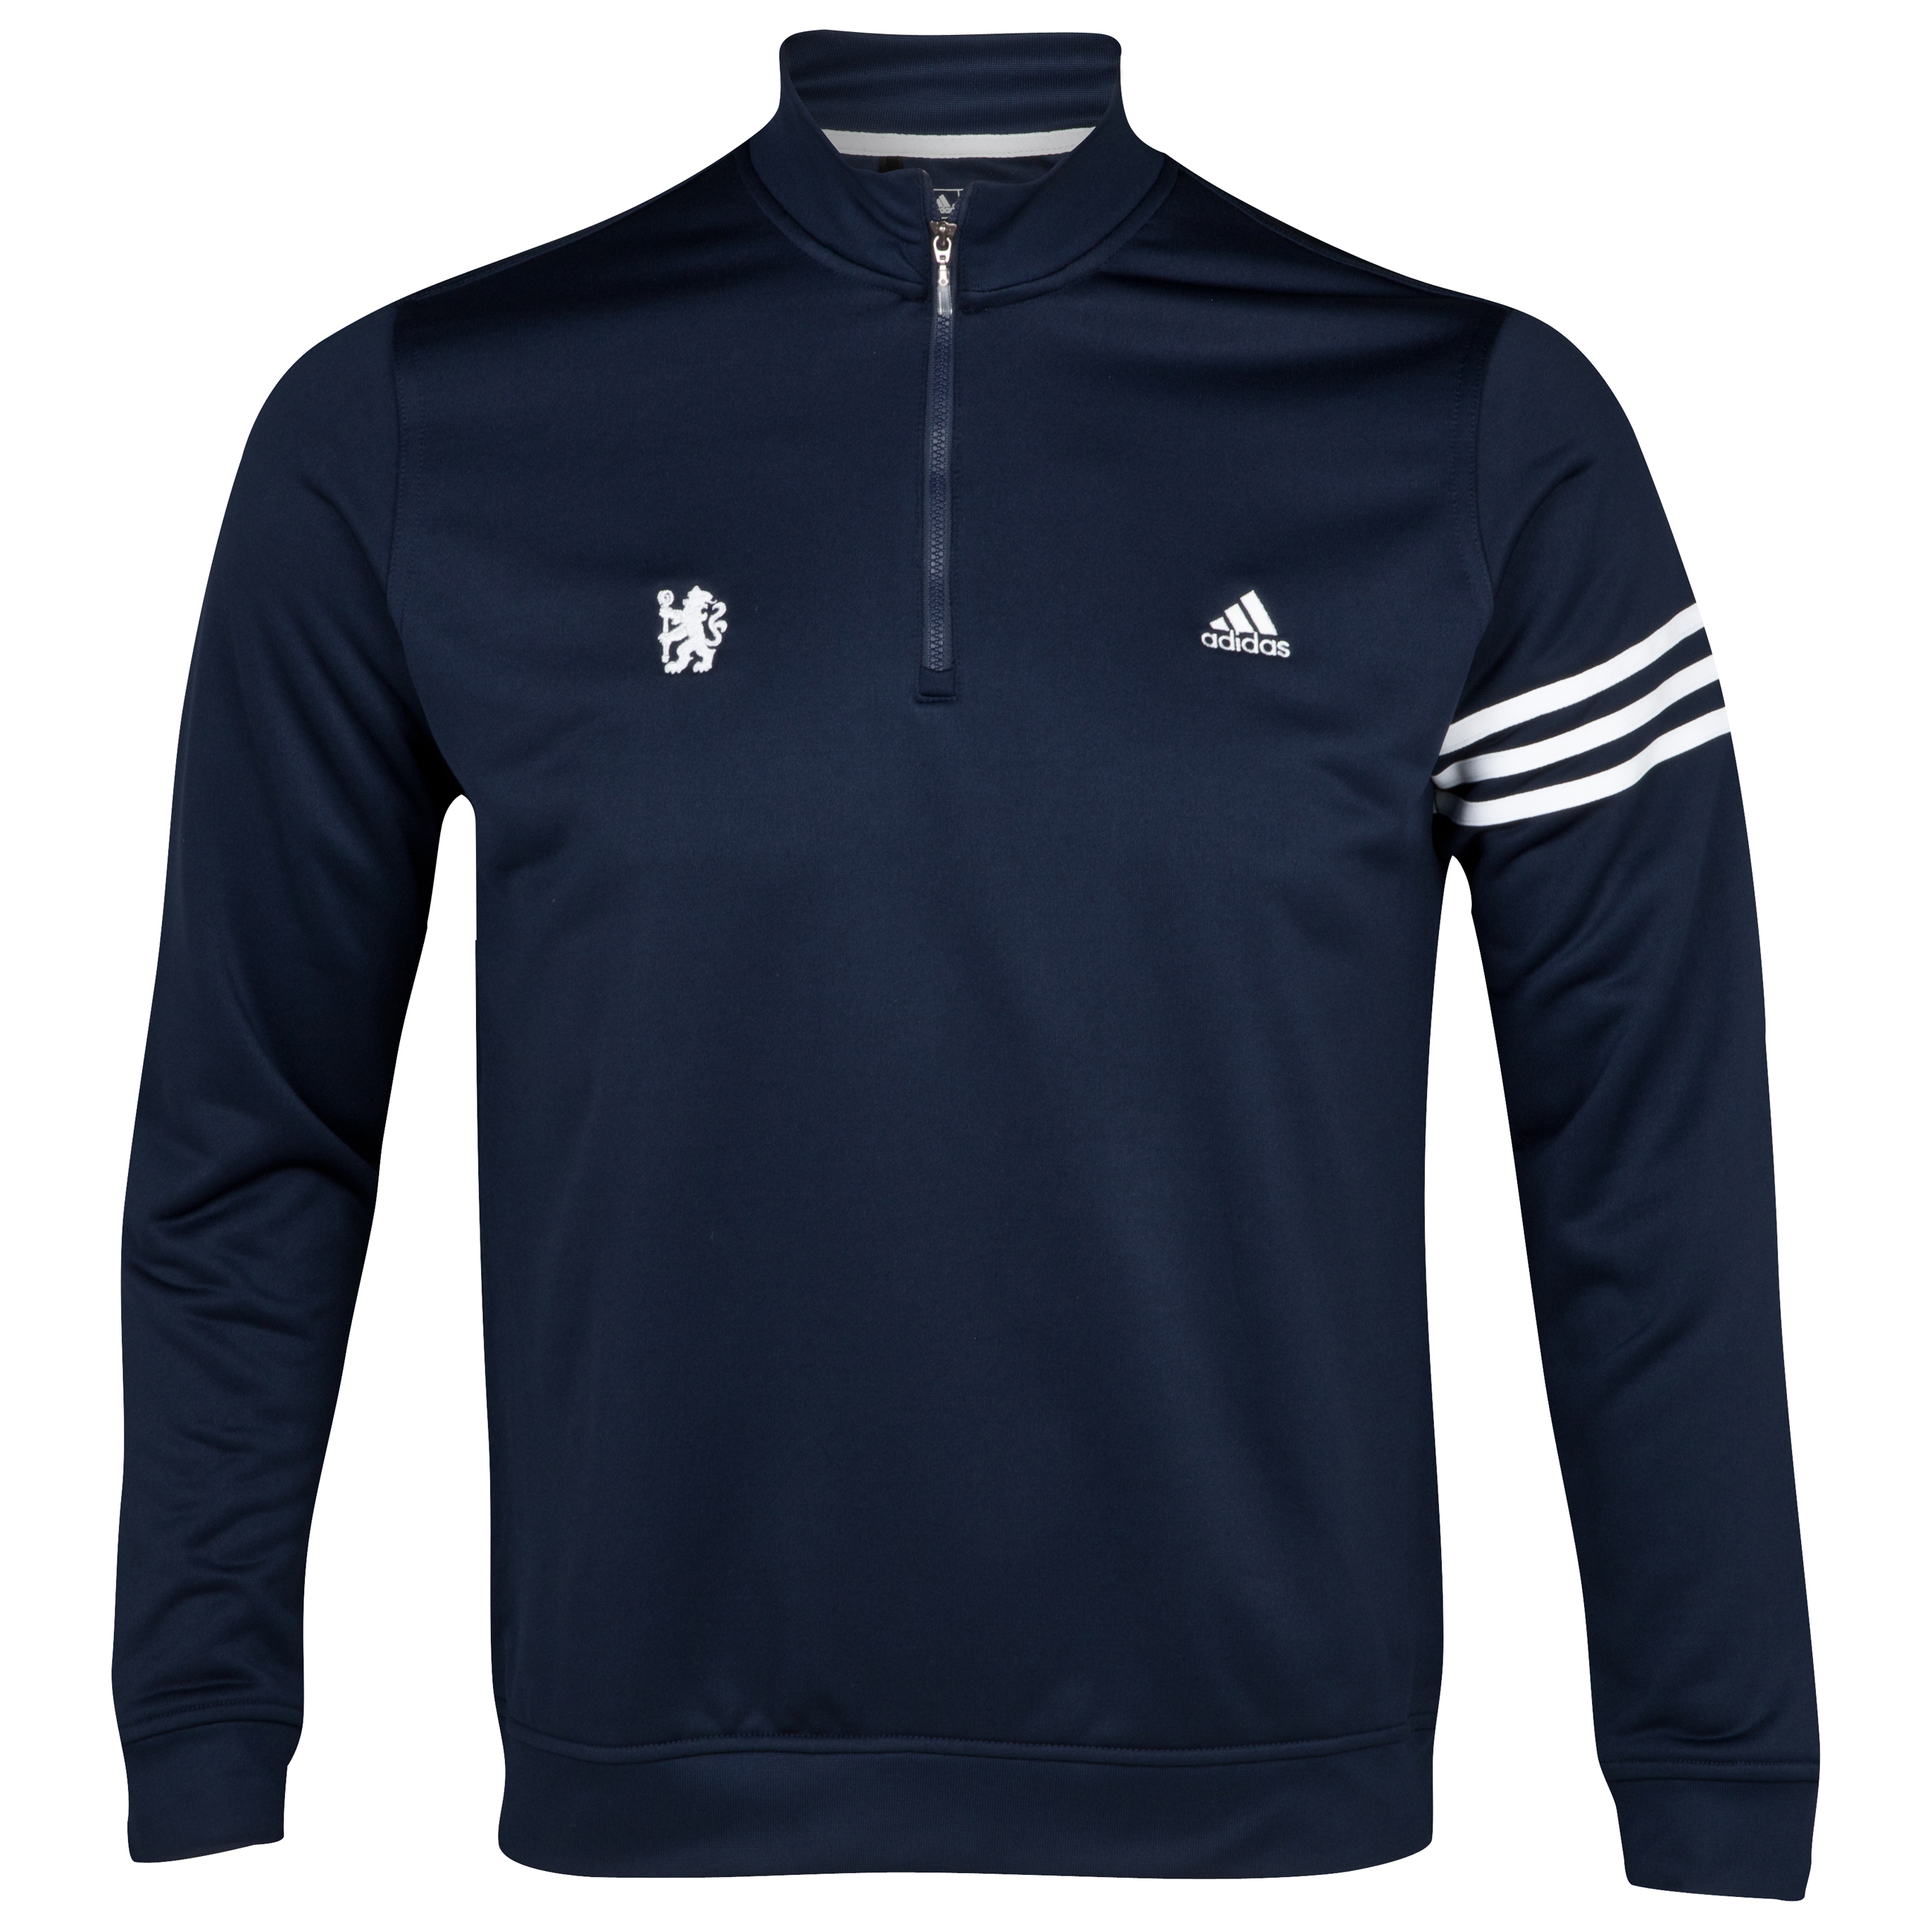 Chelsea Golf Long Sleeve Zip Neck Top - Navy